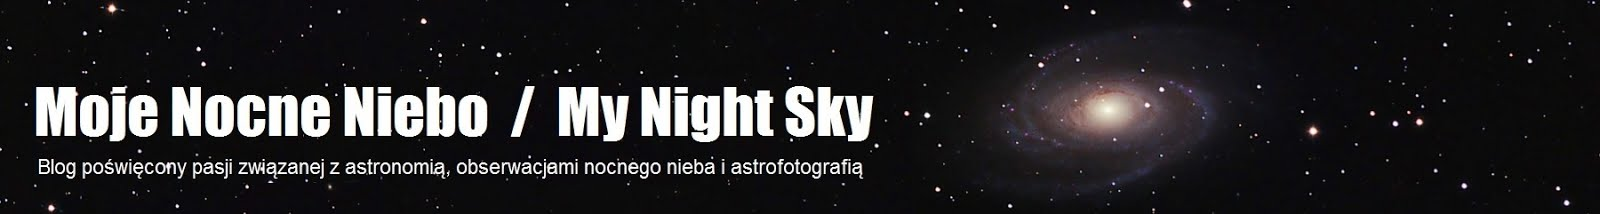 Moje Nocne Niebo / My Night Sky